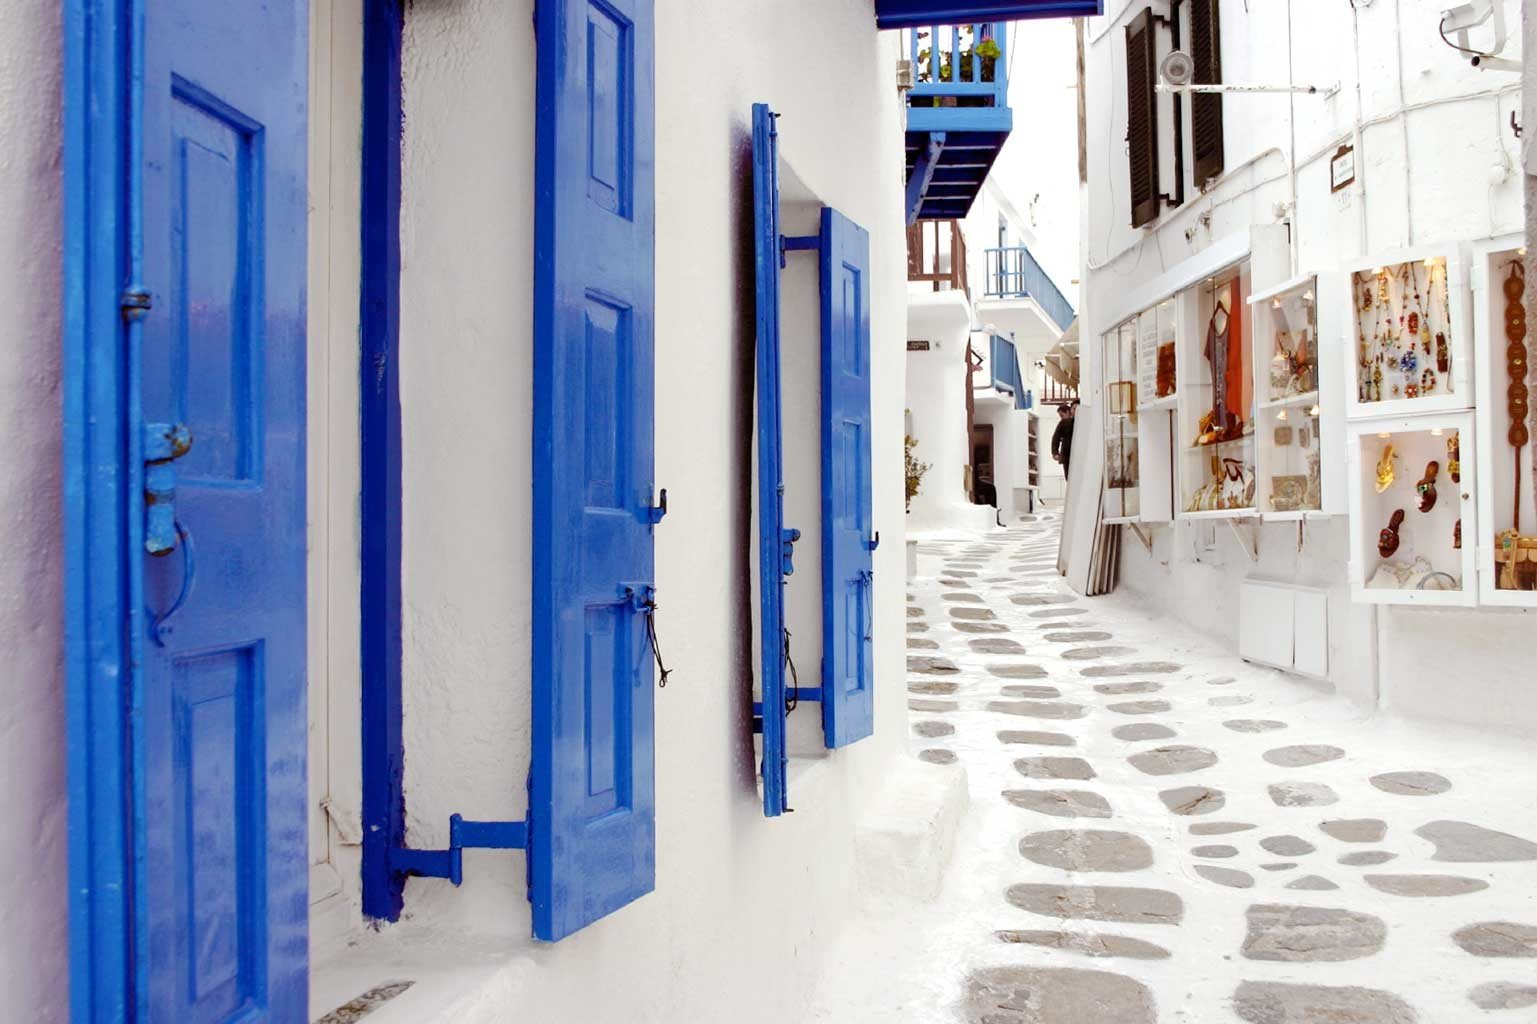 Adventure Architecture Buildings Cultural Exterior Scenic views color blue white art hall